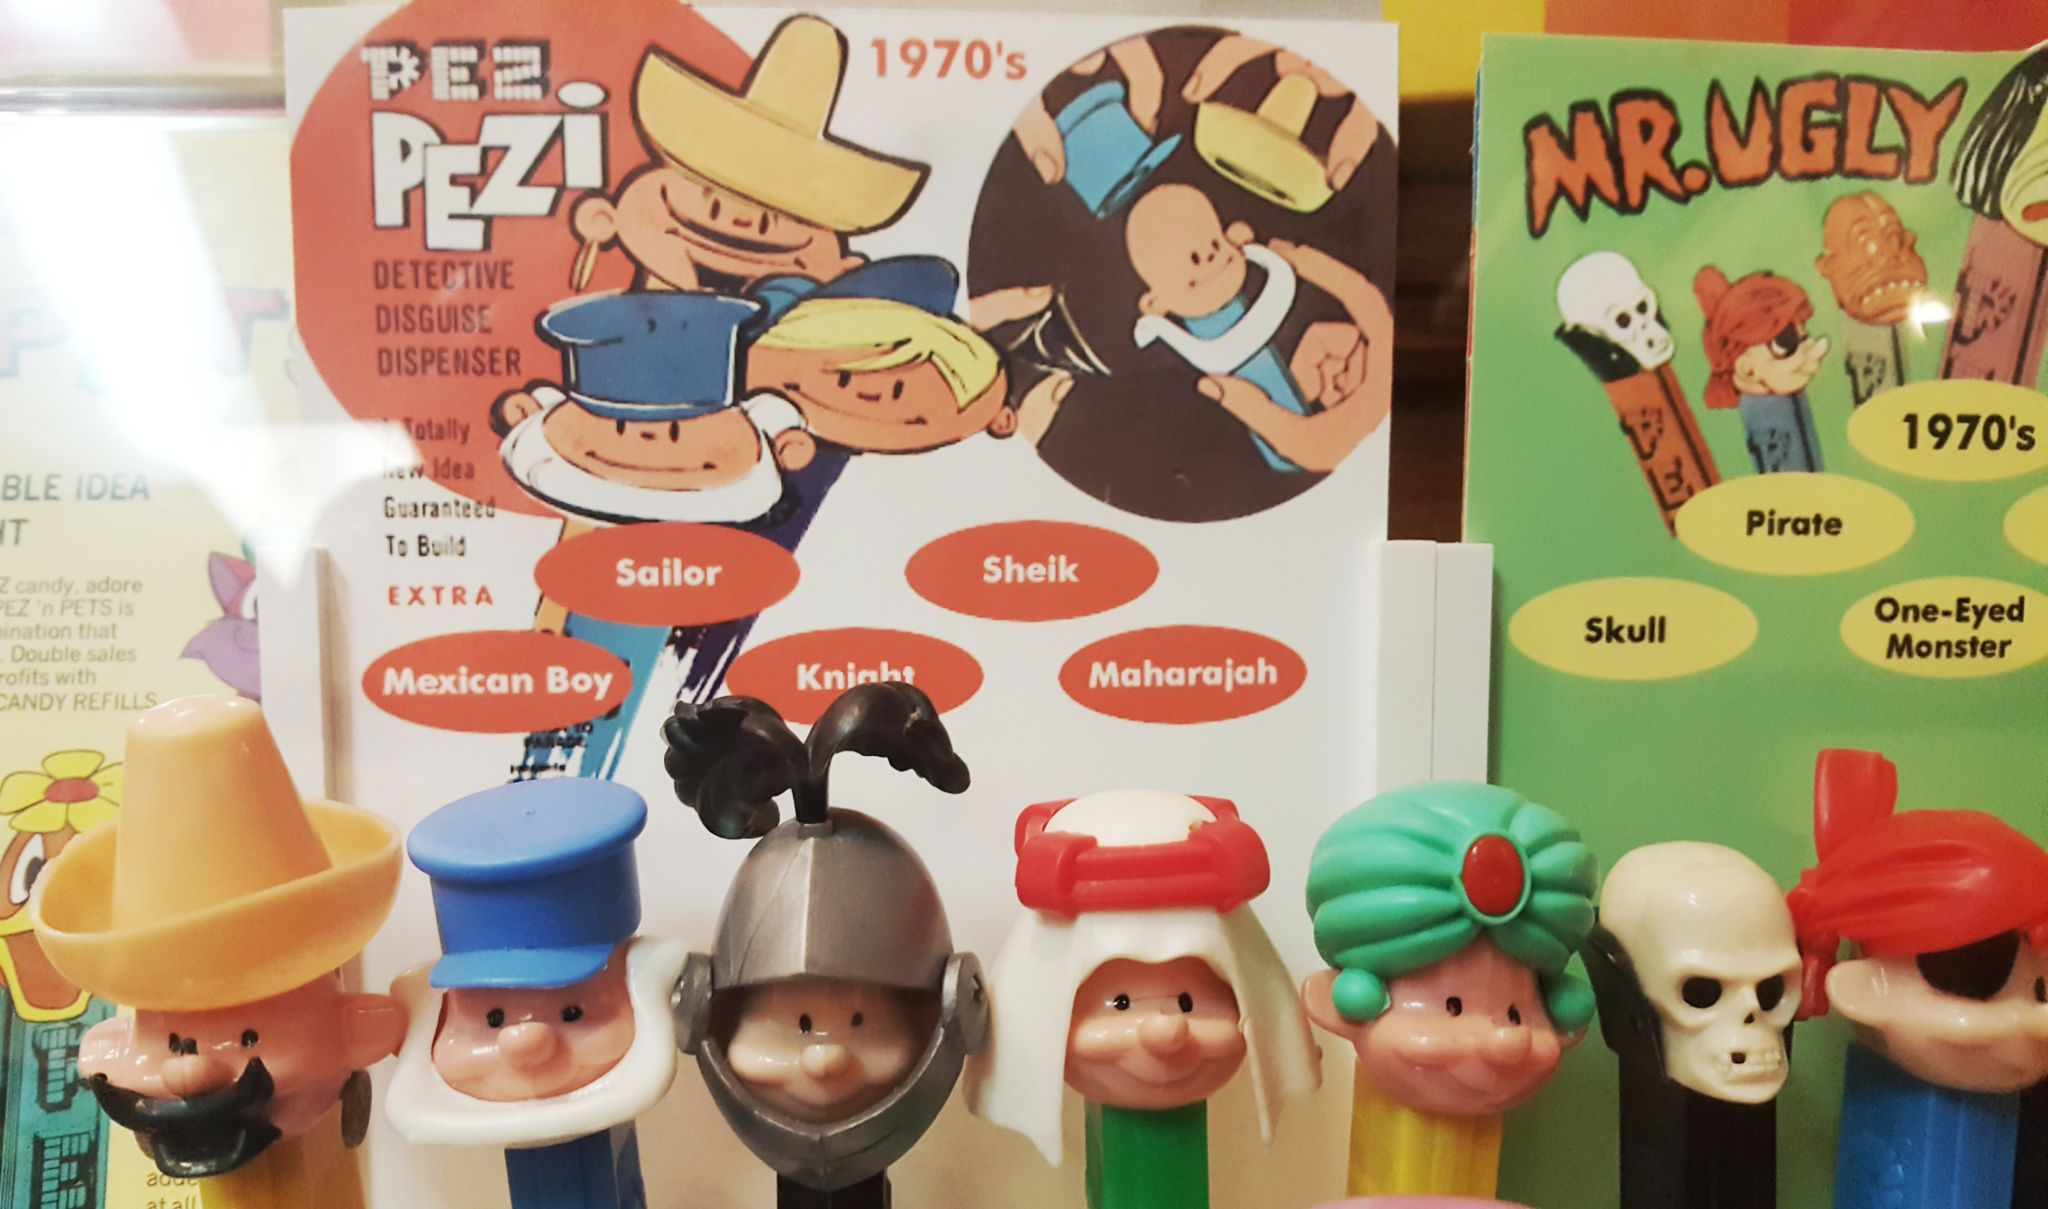 More of the Pez collection at the Pez Museum